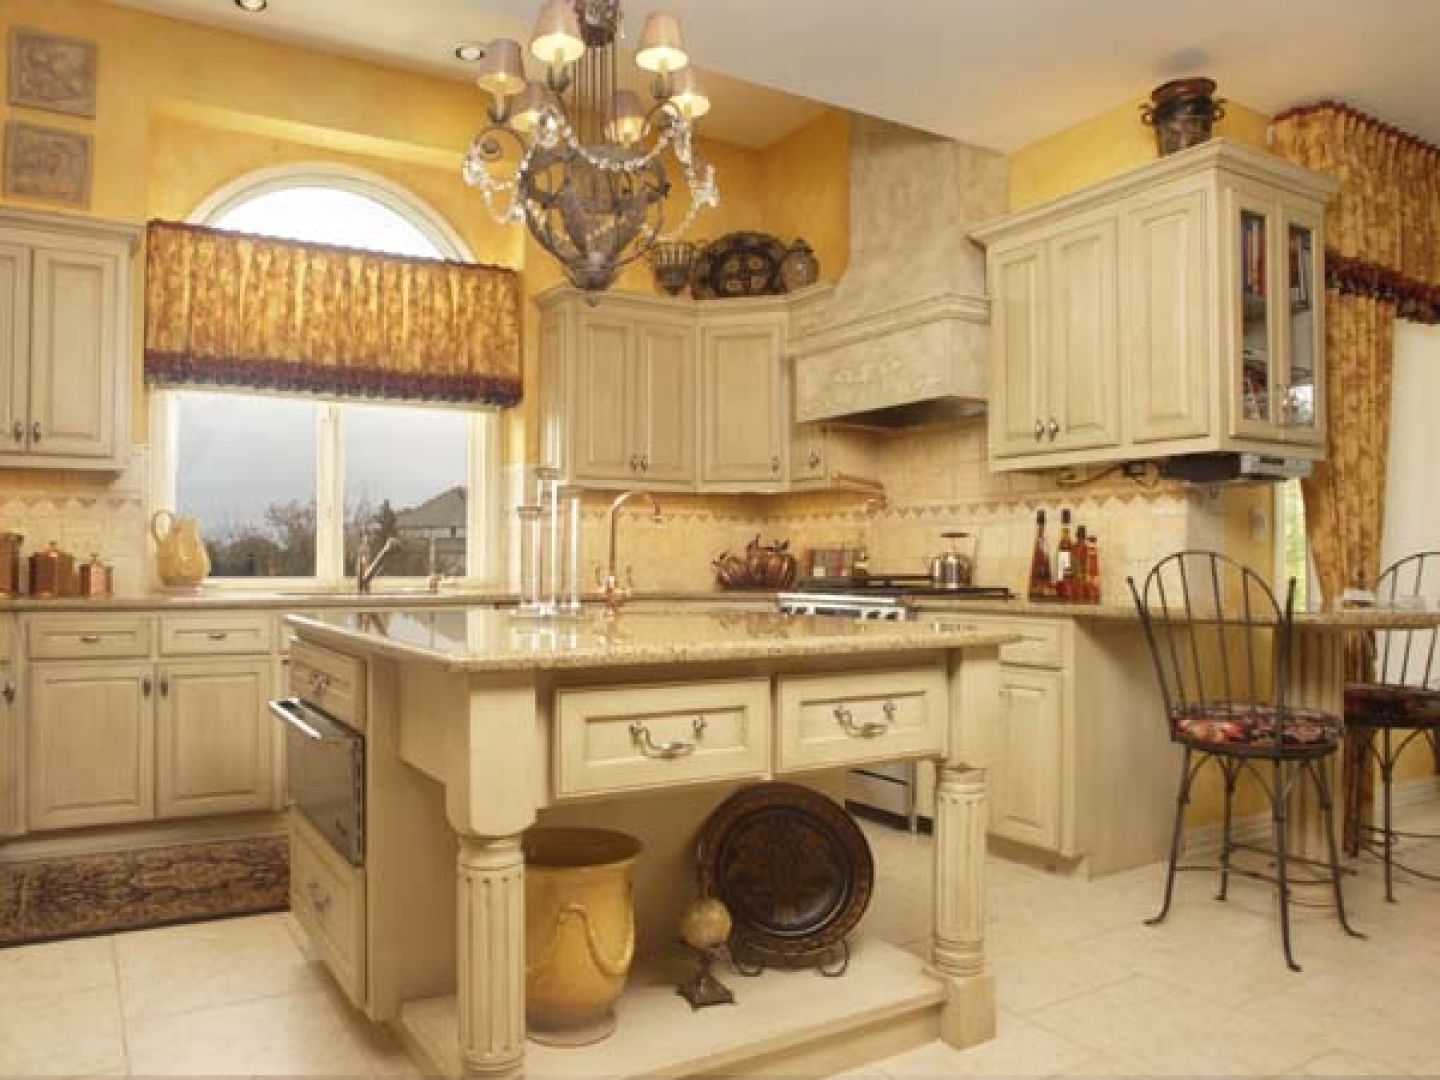 Country Style Kitchens Images Tuscany Kitchen Would Change Wall Color With